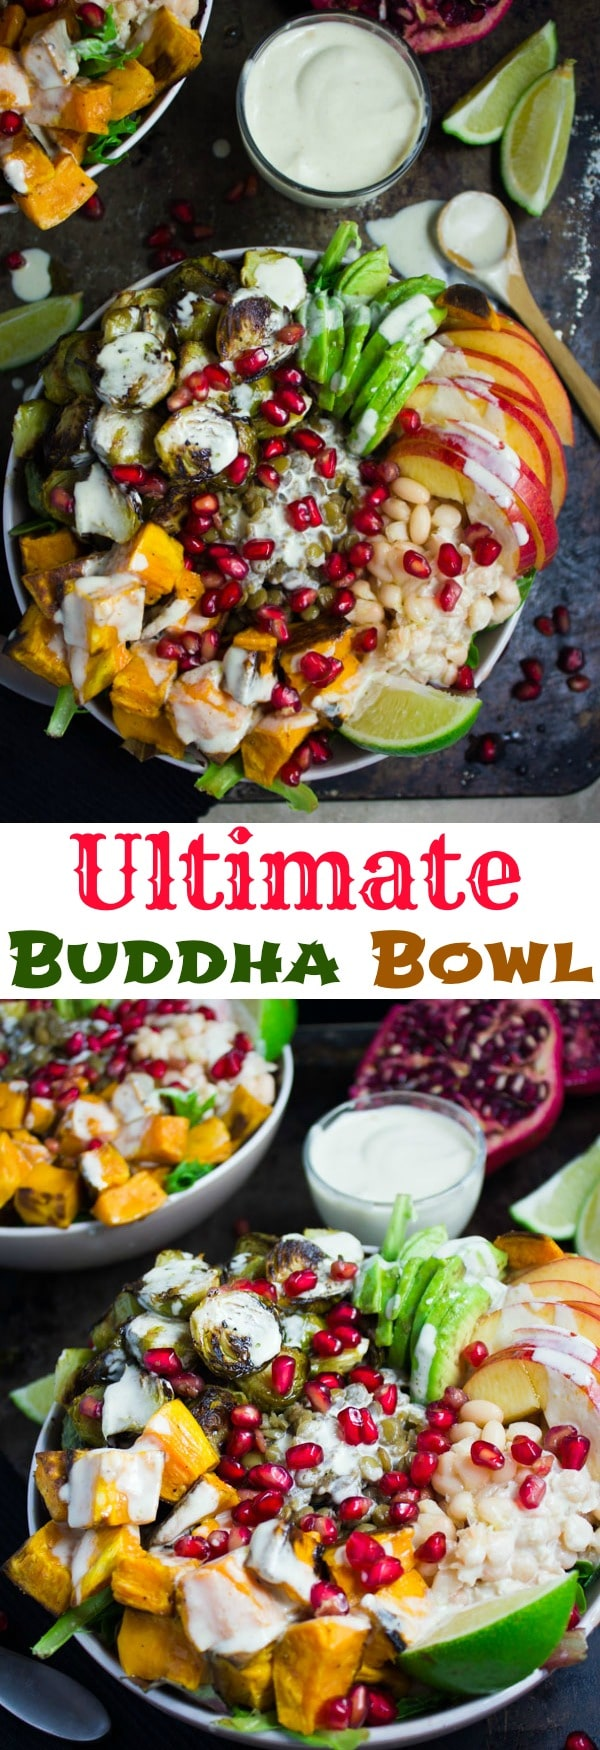 The ULTIMATE Buddha Bowl with Tahini Dressing | These healthy Harvest Buddha Bowls with Lentils, Roasted Sweet Potatoes, Brussels Sprouts, Apples, Pomegranate Arils and Tahini Dressing are not only gorgeous but also super filling, healthy and nourishing! Pack them for lunch to fuel up for the day! #healthylunches, #buddhabowl, #easyrecipes, #fall, #realfood, #cleaneating, #vegetarian